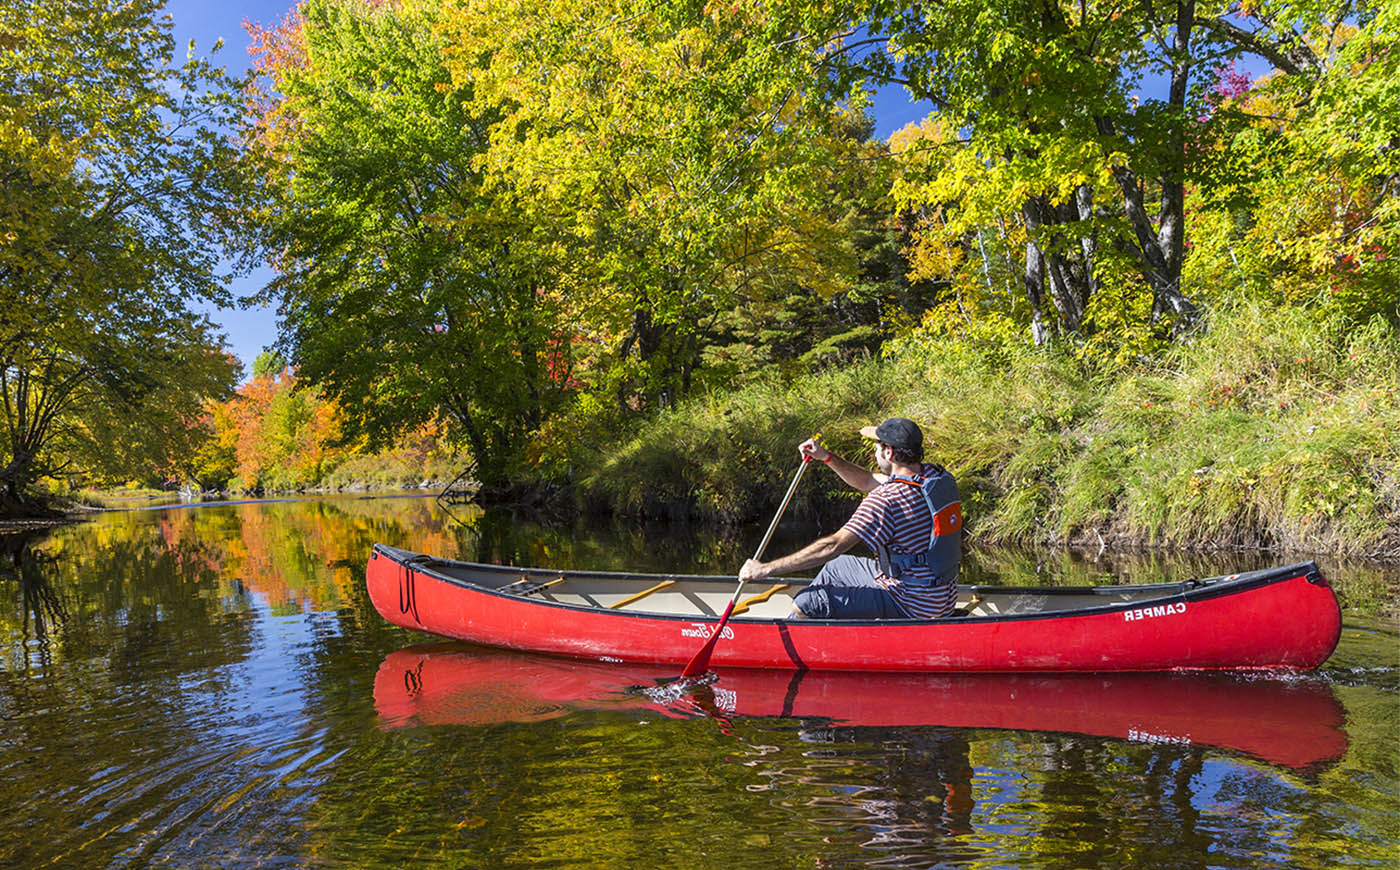 In 2016, we conserved nearly nine miles on the East Branch of Penobscot River, preserving access to one of Maine's best wild canoeing rivers, while protecting the river's ecological assets. The project builds on our 15-year conservation record in the Pine Tree State, during which we have awarded grants and loans totaling more than $13 million toward helping Maine's conservation groups and agencies protect more than 1.3 million acres.